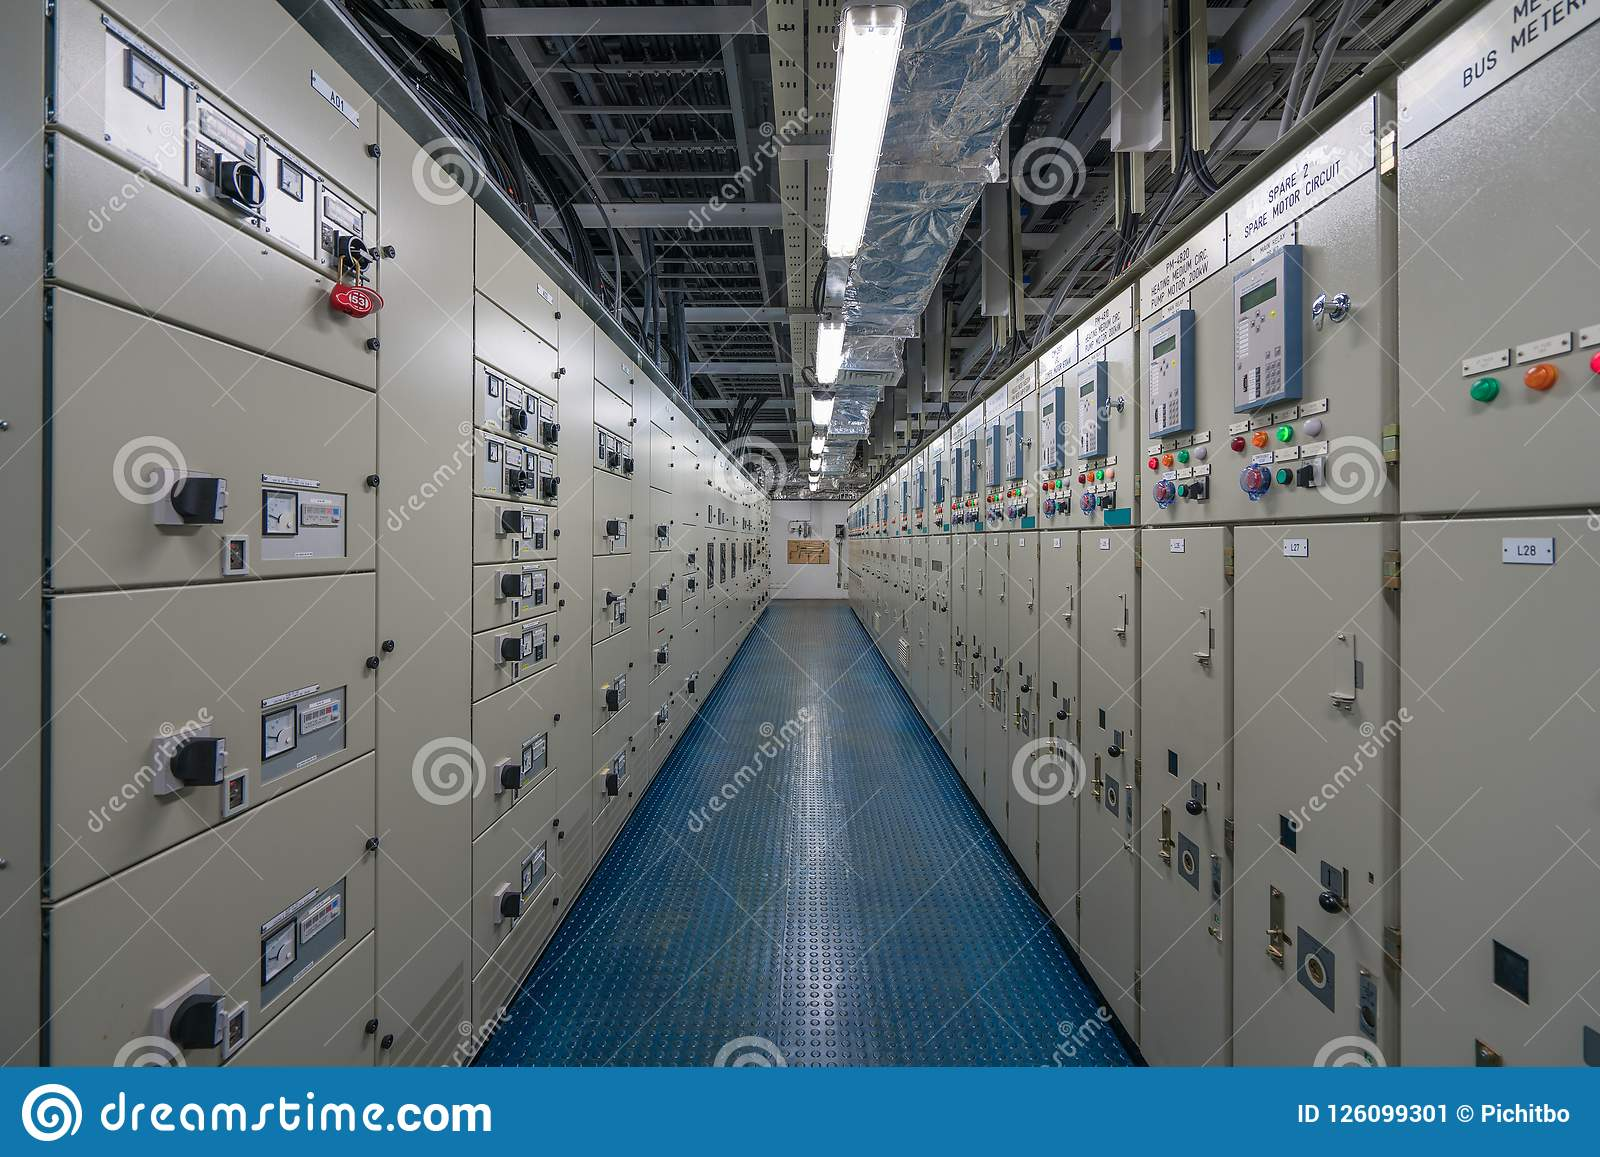 Electrical Switch Gear Room With Electrical Control Panel And ...